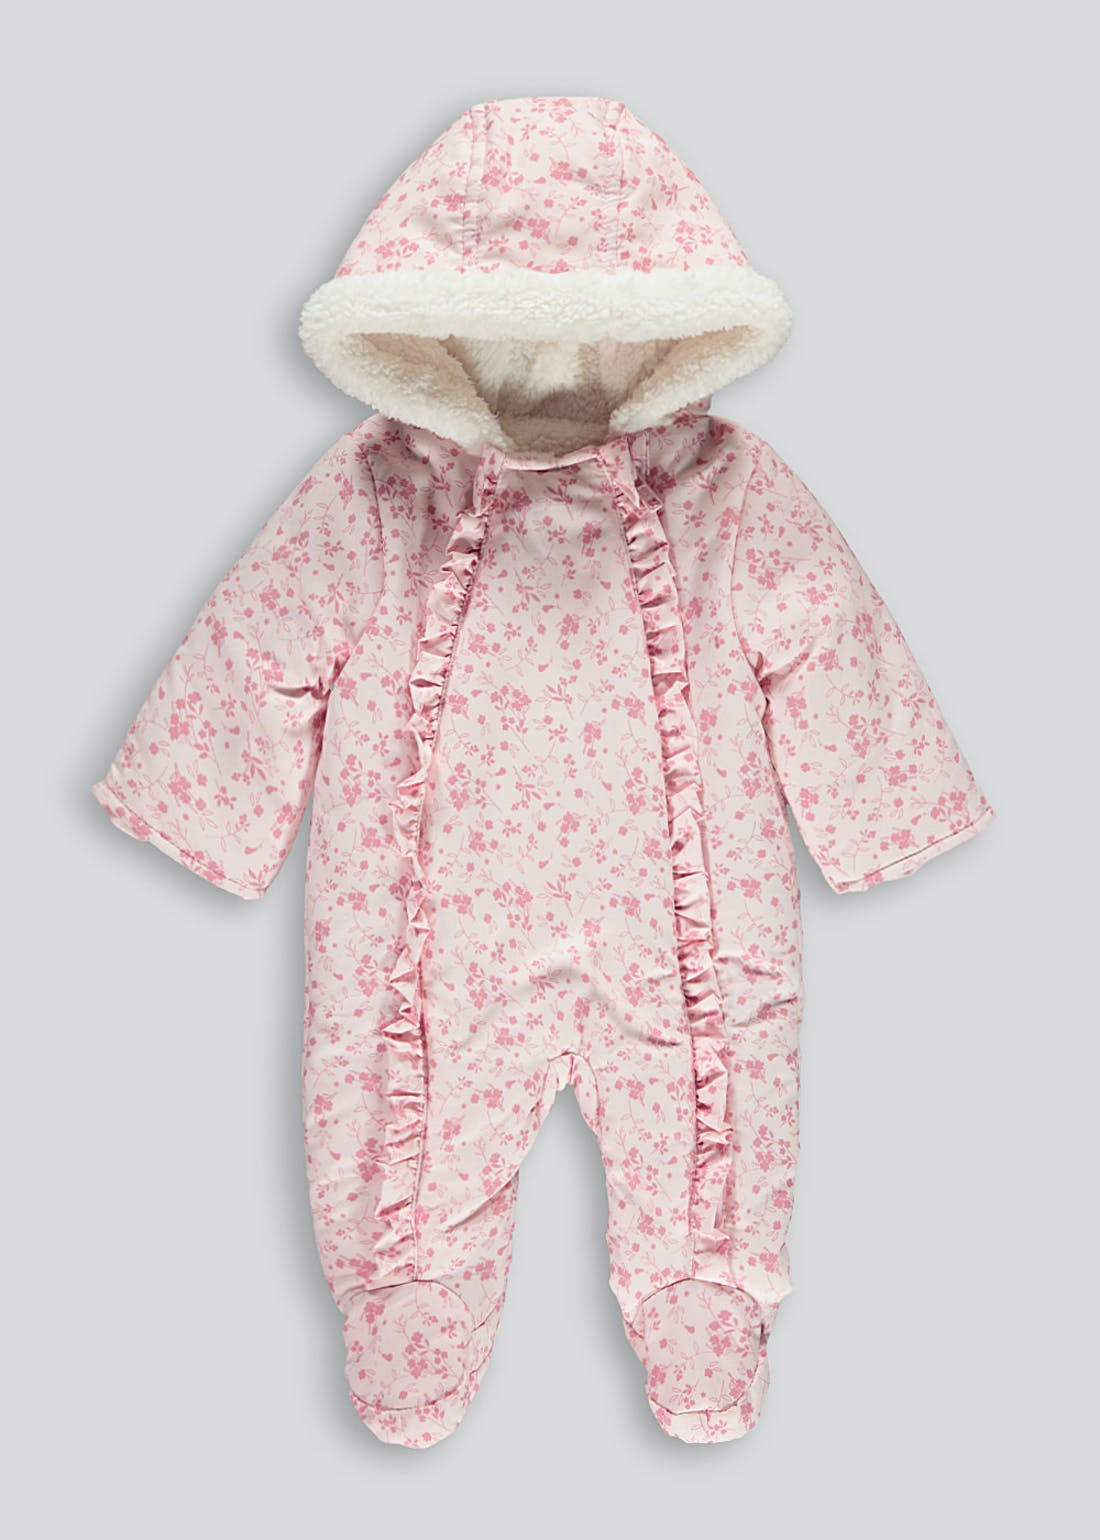 Girls Pink Floral Borg Snowsuit (Tiny Baby-18mths)